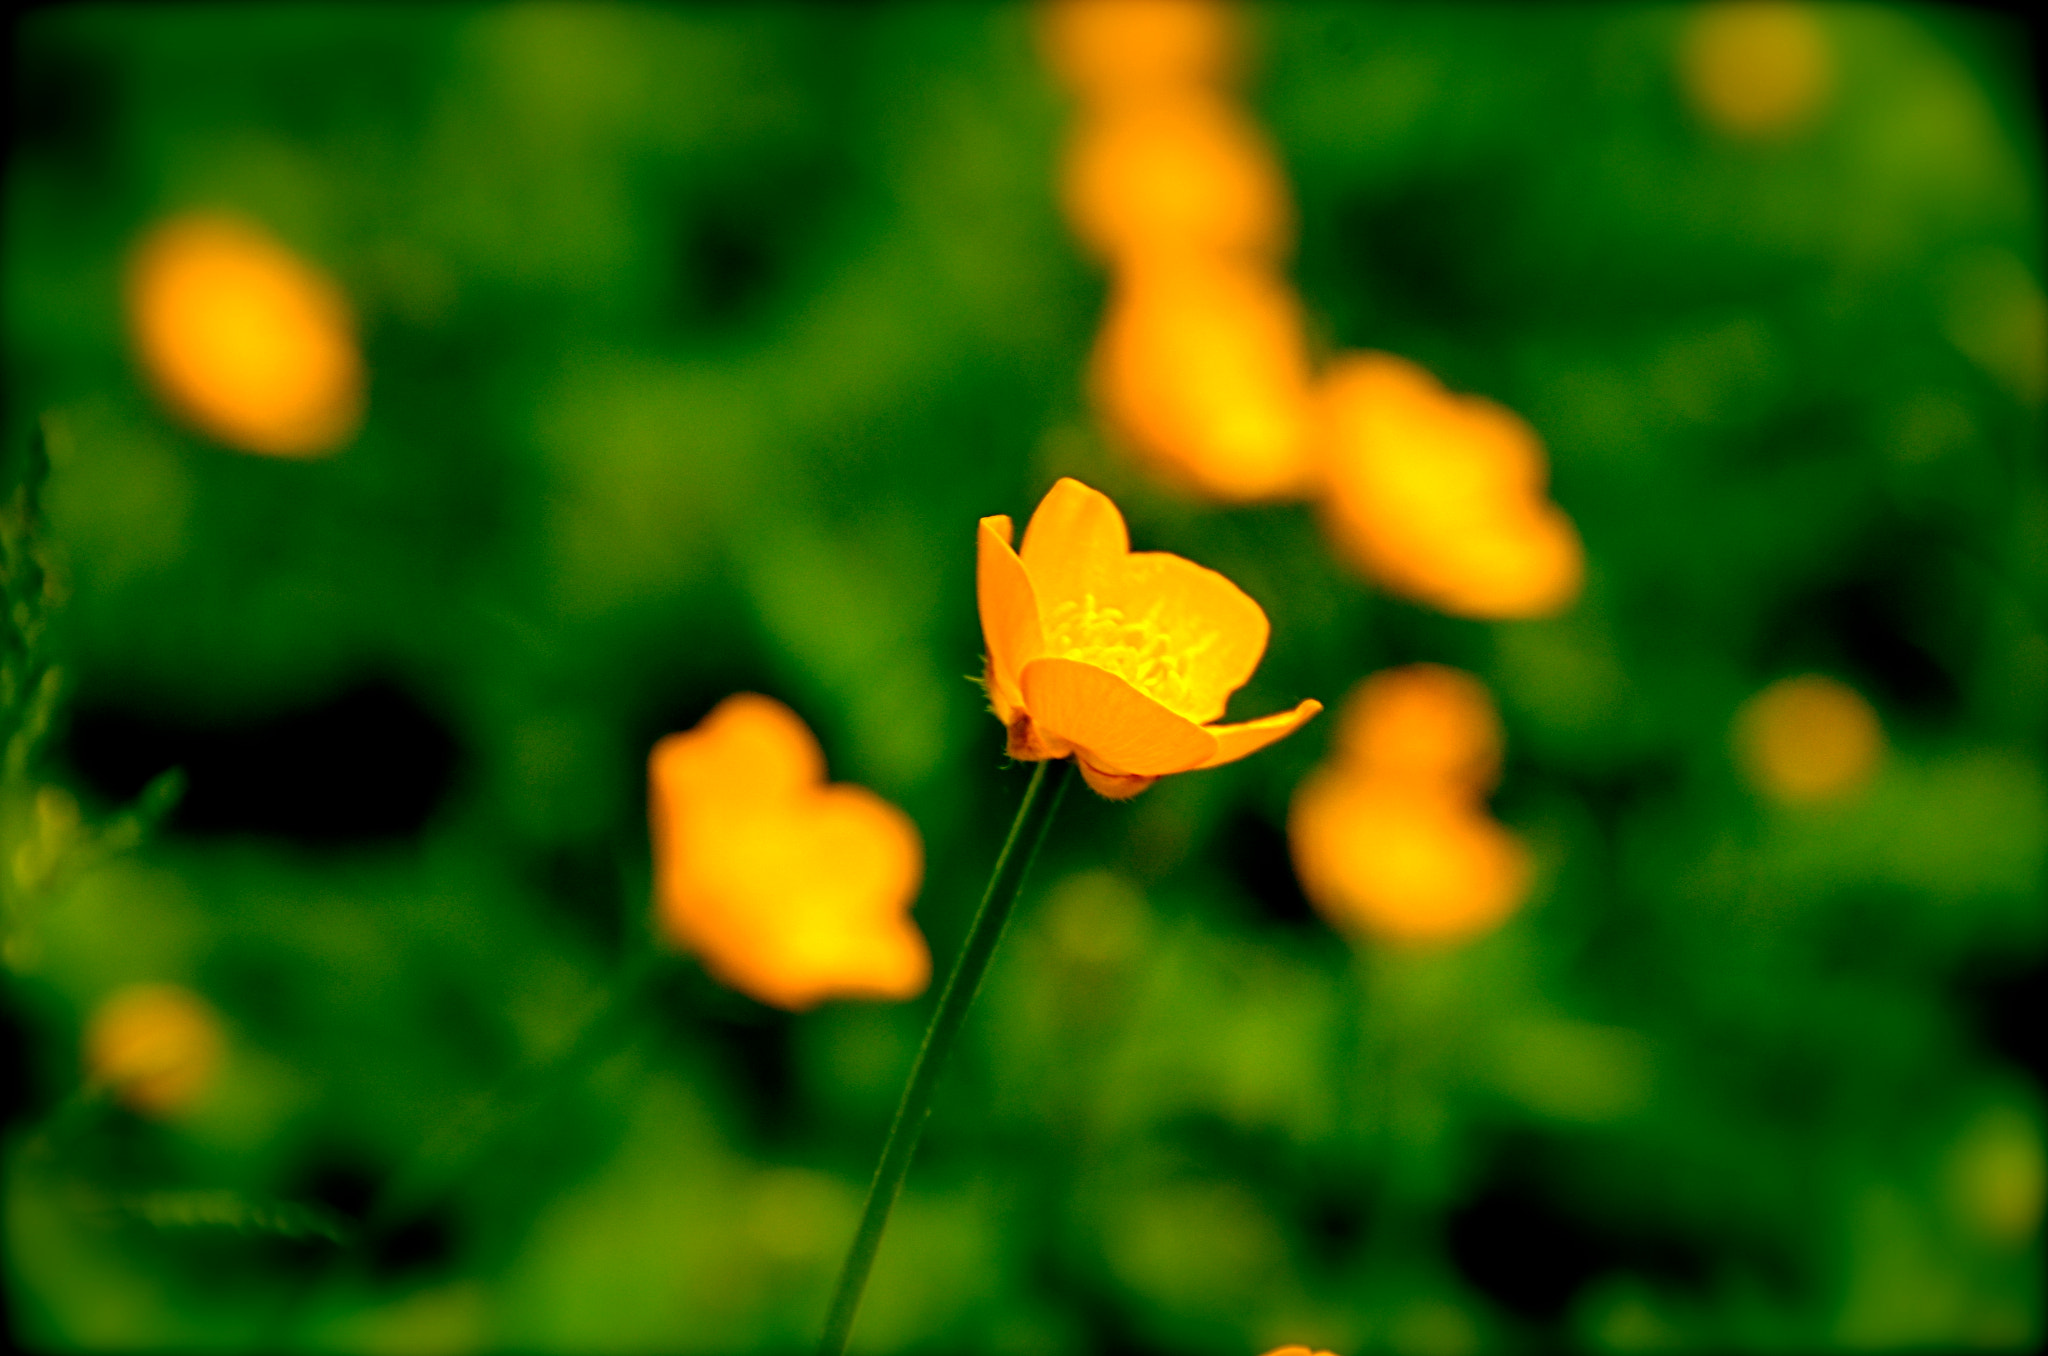 Photograph One amongst many by nakky in on 500px